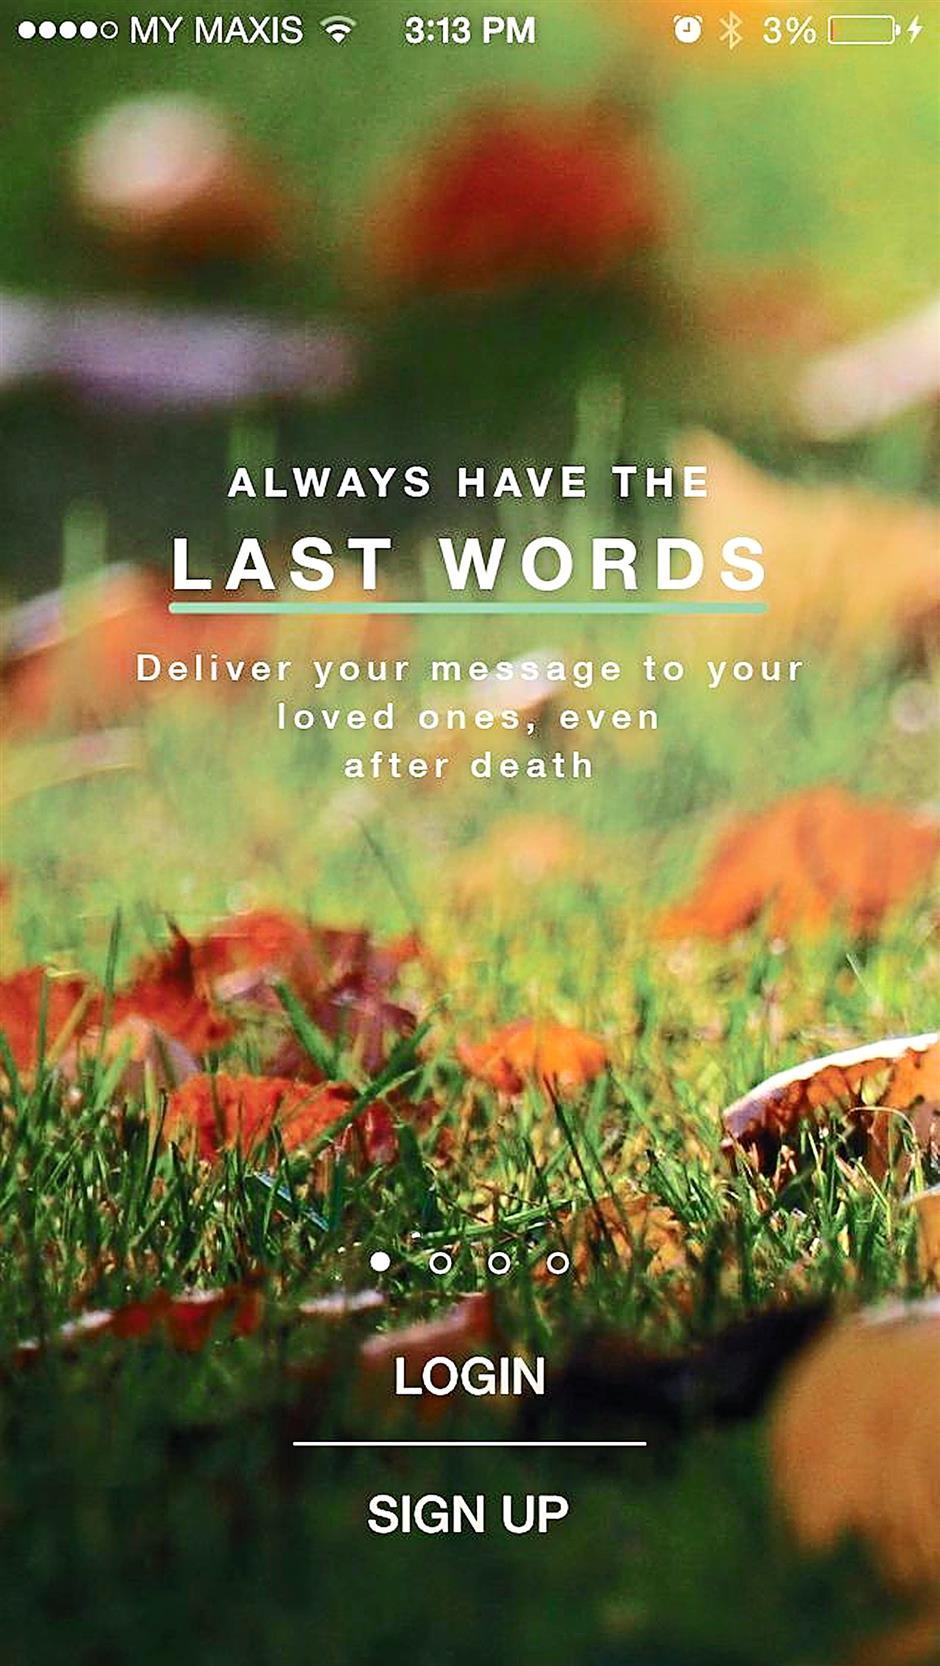 Message from beyond: The Last Words app will allow users to deliver pre-recorded messages - in the form of email, picture, text, video or voice message - to their loved ones.